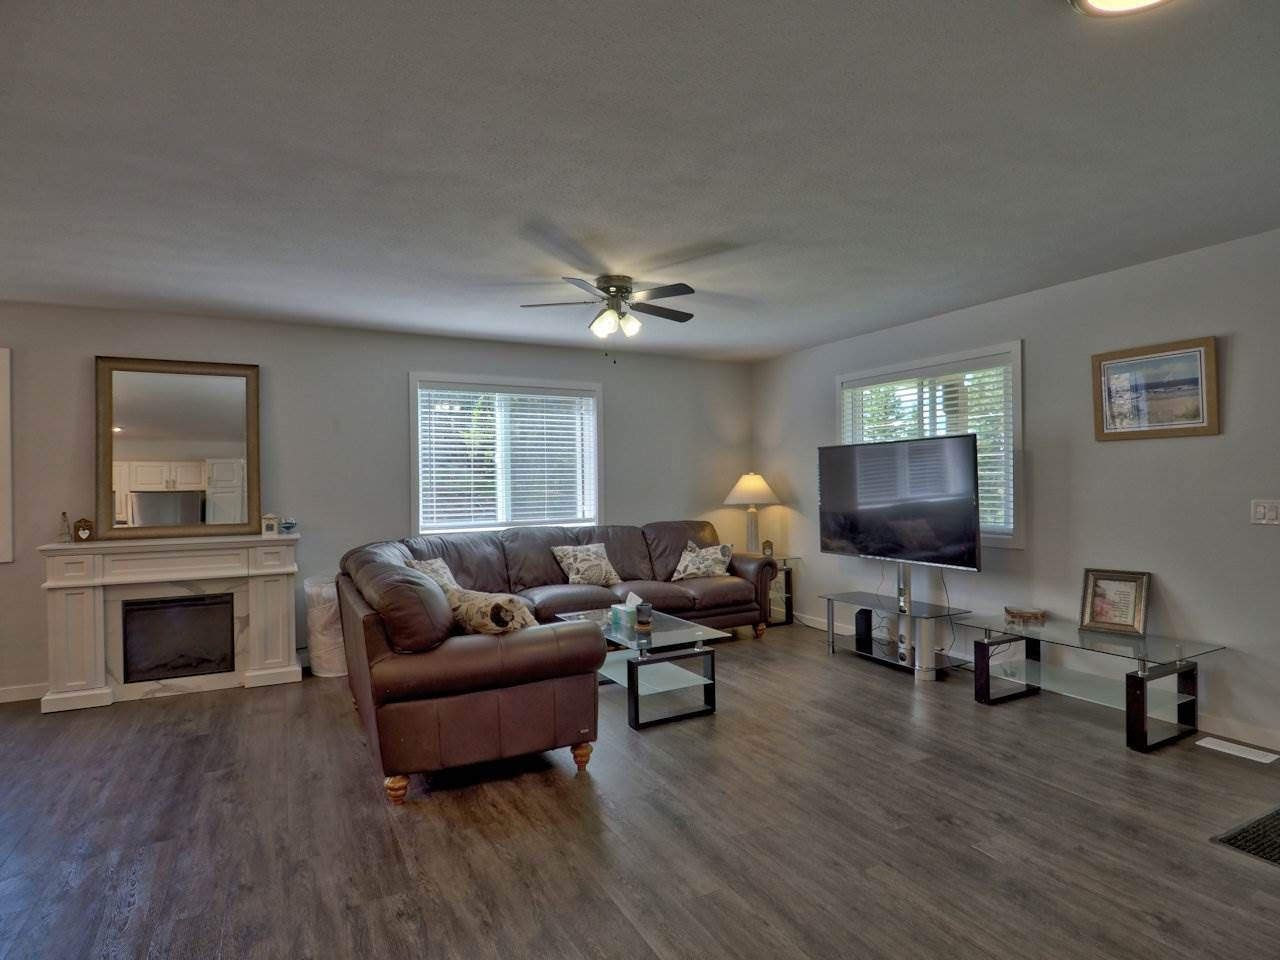 Photo 5: Photos: 4915 KITWANGA Drive in 108 Mile Ranch: 108 Ranch House for sale (100 Mile House (Zone 10))  : MLS®# R2481177